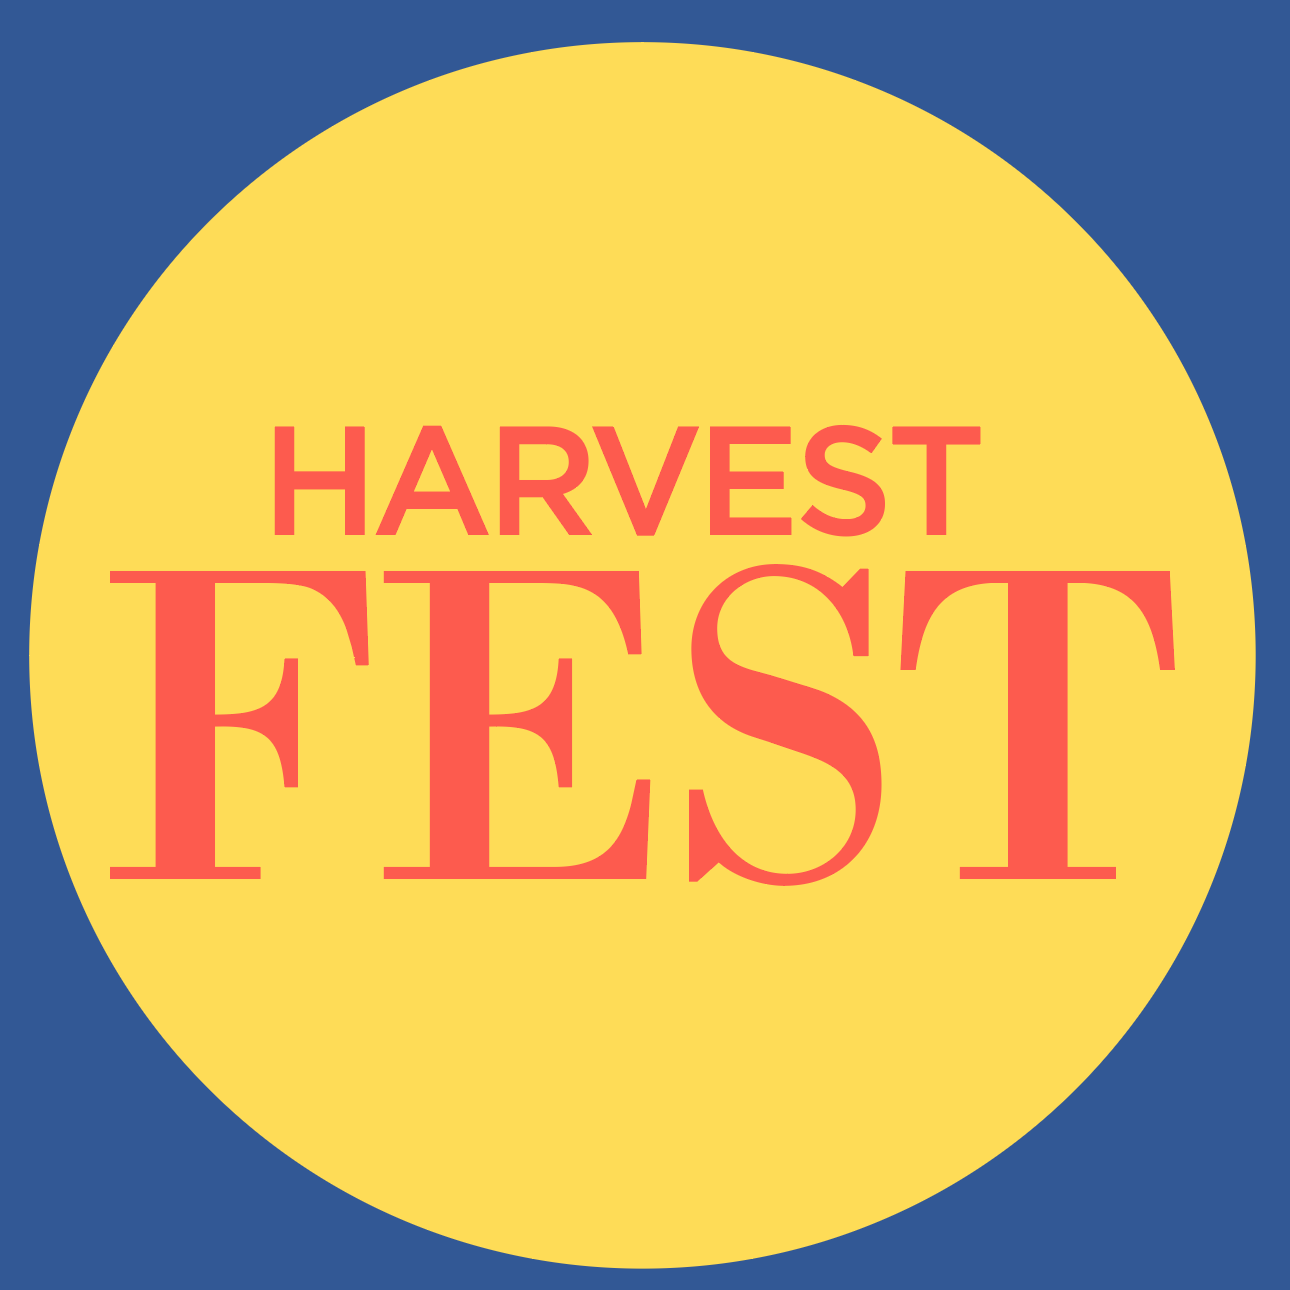 Scarecrow Contest and Harvest Festival